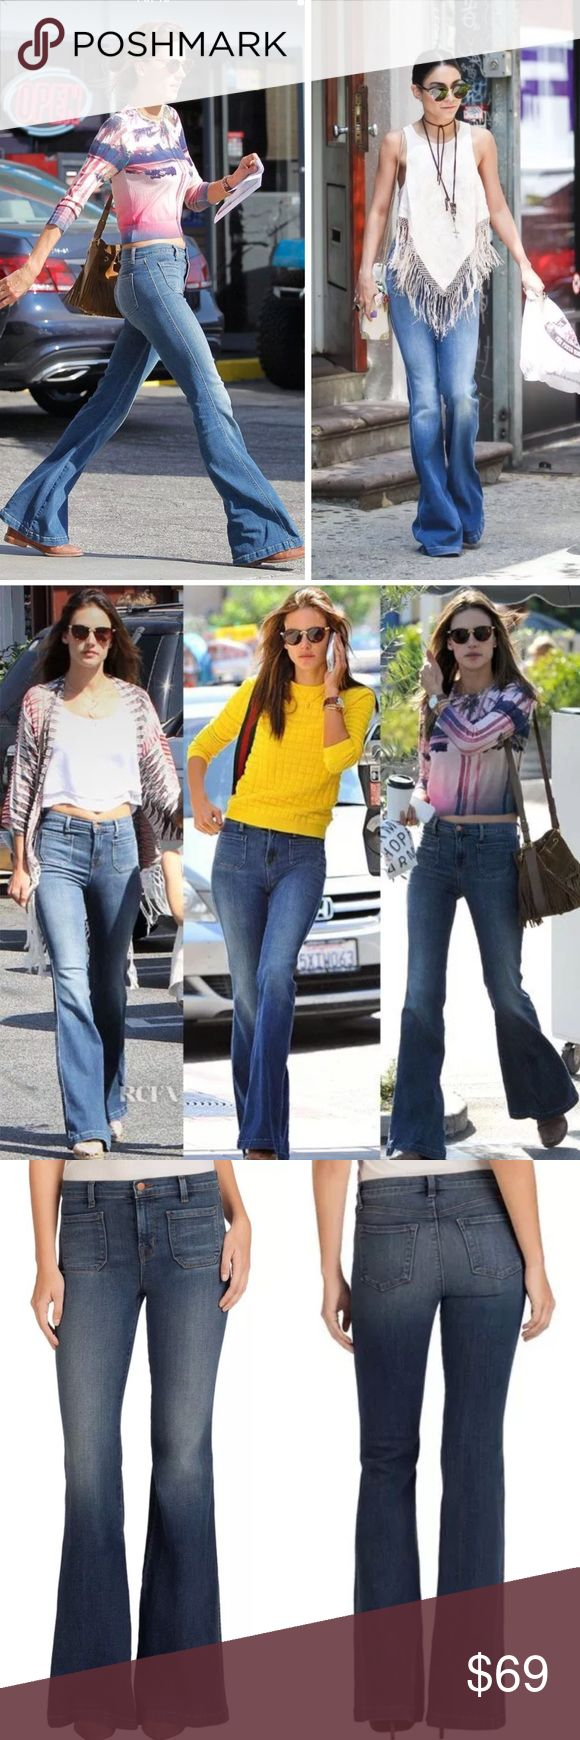 """J BRAND JEANS DEMI HIGH RISE FLARE ASHBURY WASH 28 J BRAND 802 DEMI HIGH RISE FLARE JEANS IN ASHBURY WASH  Celeb Fave: as seen on Singer Selena Gomez, Alessandra Ambros, Vanessa Hudson  $238 Retail Price  new without the tag & one minor defect a tiny nick hole by the side seam on left thigh see the top right photo on the last set of pictures (very minor)  Style 802O212  Patched Pocket Flare  High-Rise  65% Cotton, 33% Lyocell, 2% Elastane  Sz 28: waist flat 13.75"""" rise 9.5"""", hips flat at top…"""